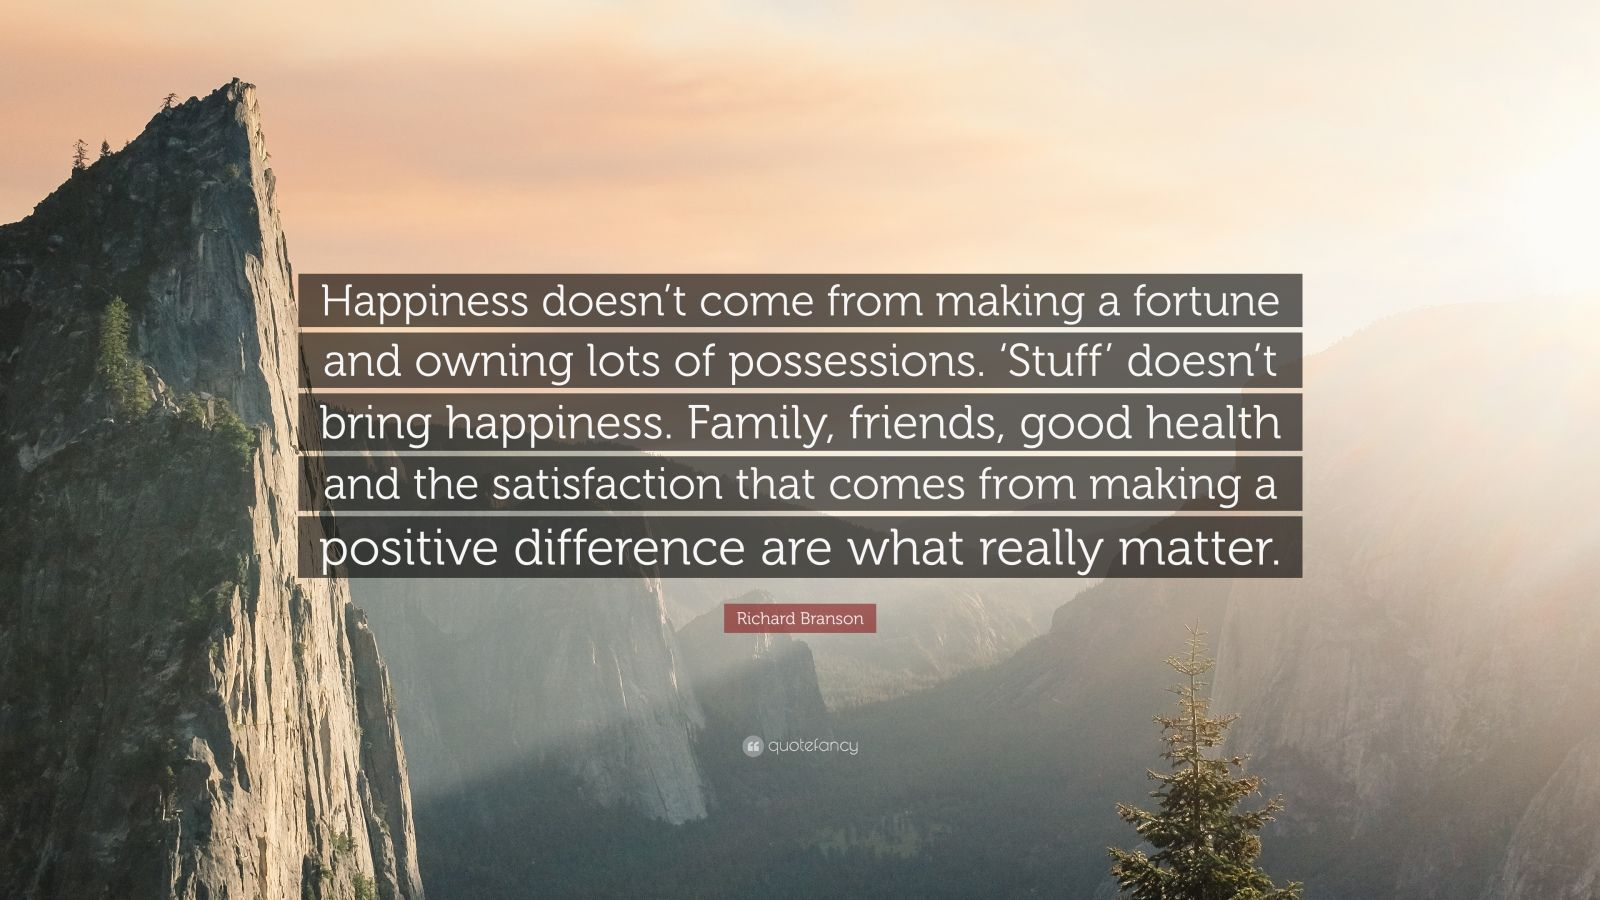 """Richard Branson Quote: """"Happiness doesn't come from making a fortune and owning lots of possessions. 'Stuff' doesn't bring happiness. Family, friends, good health and the satisfaction that comes from making a positive difference are what really matter."""""""